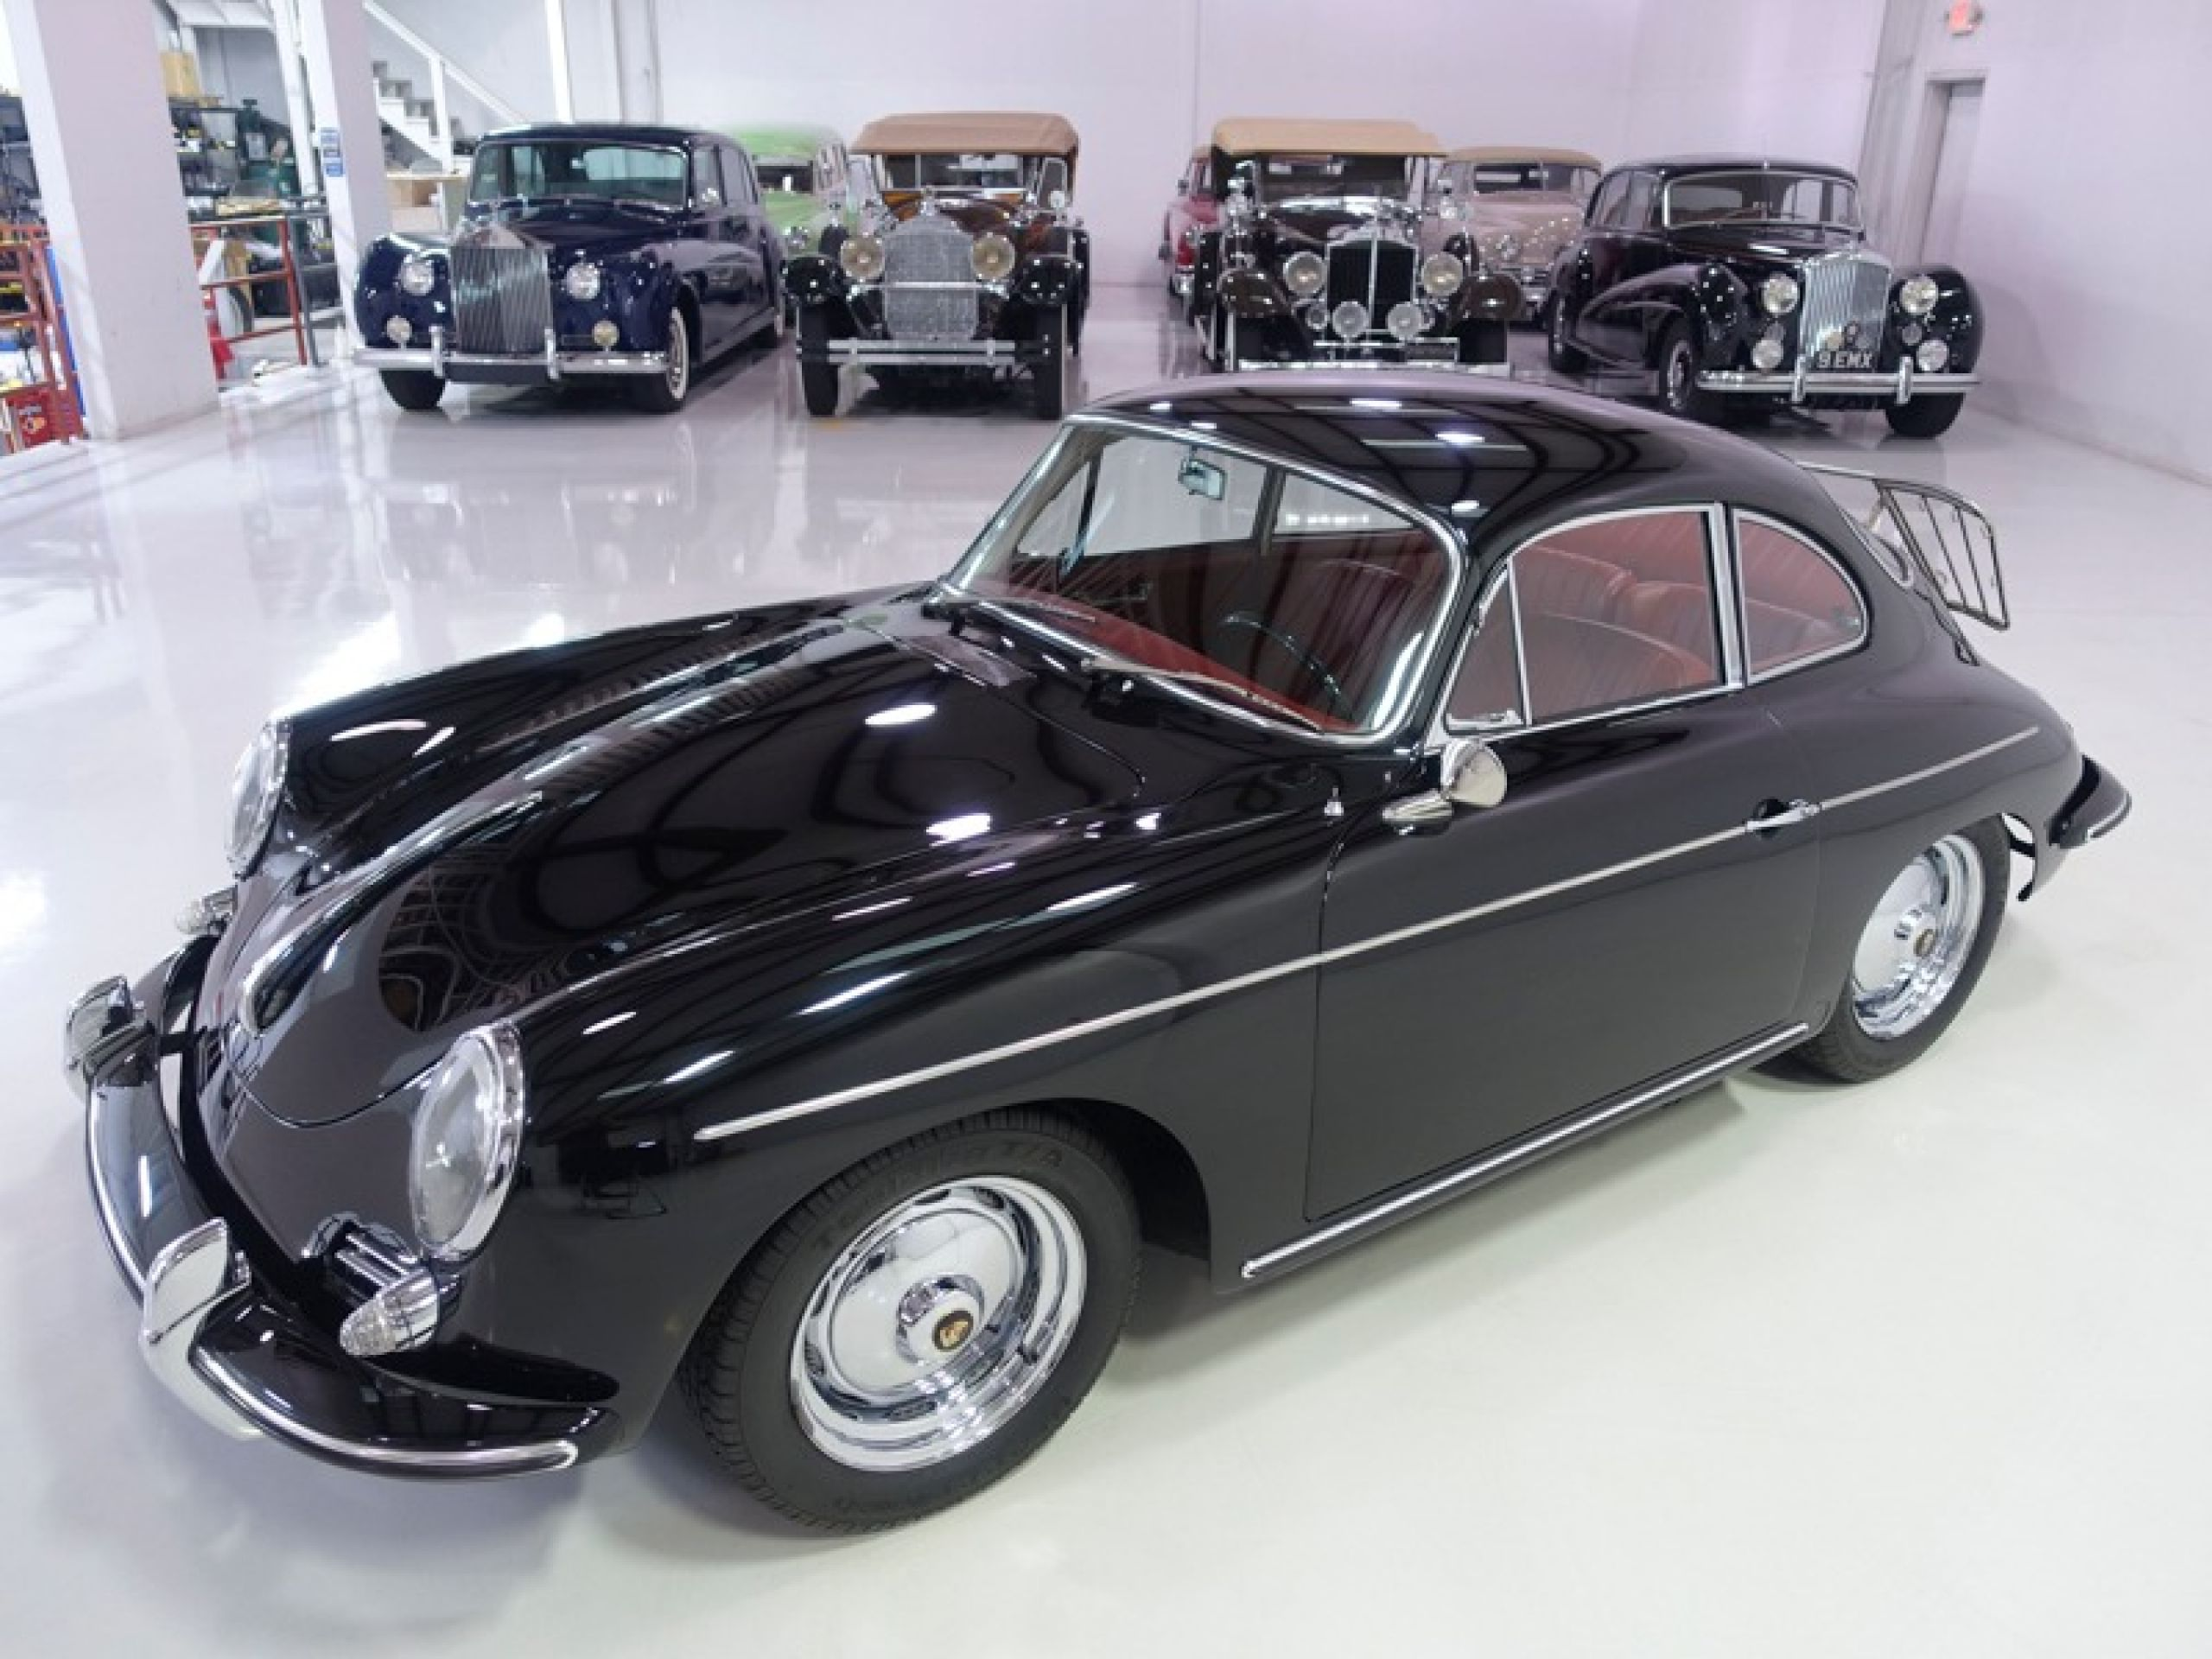 1963 Porsche 356B Super Coupe by Karmann